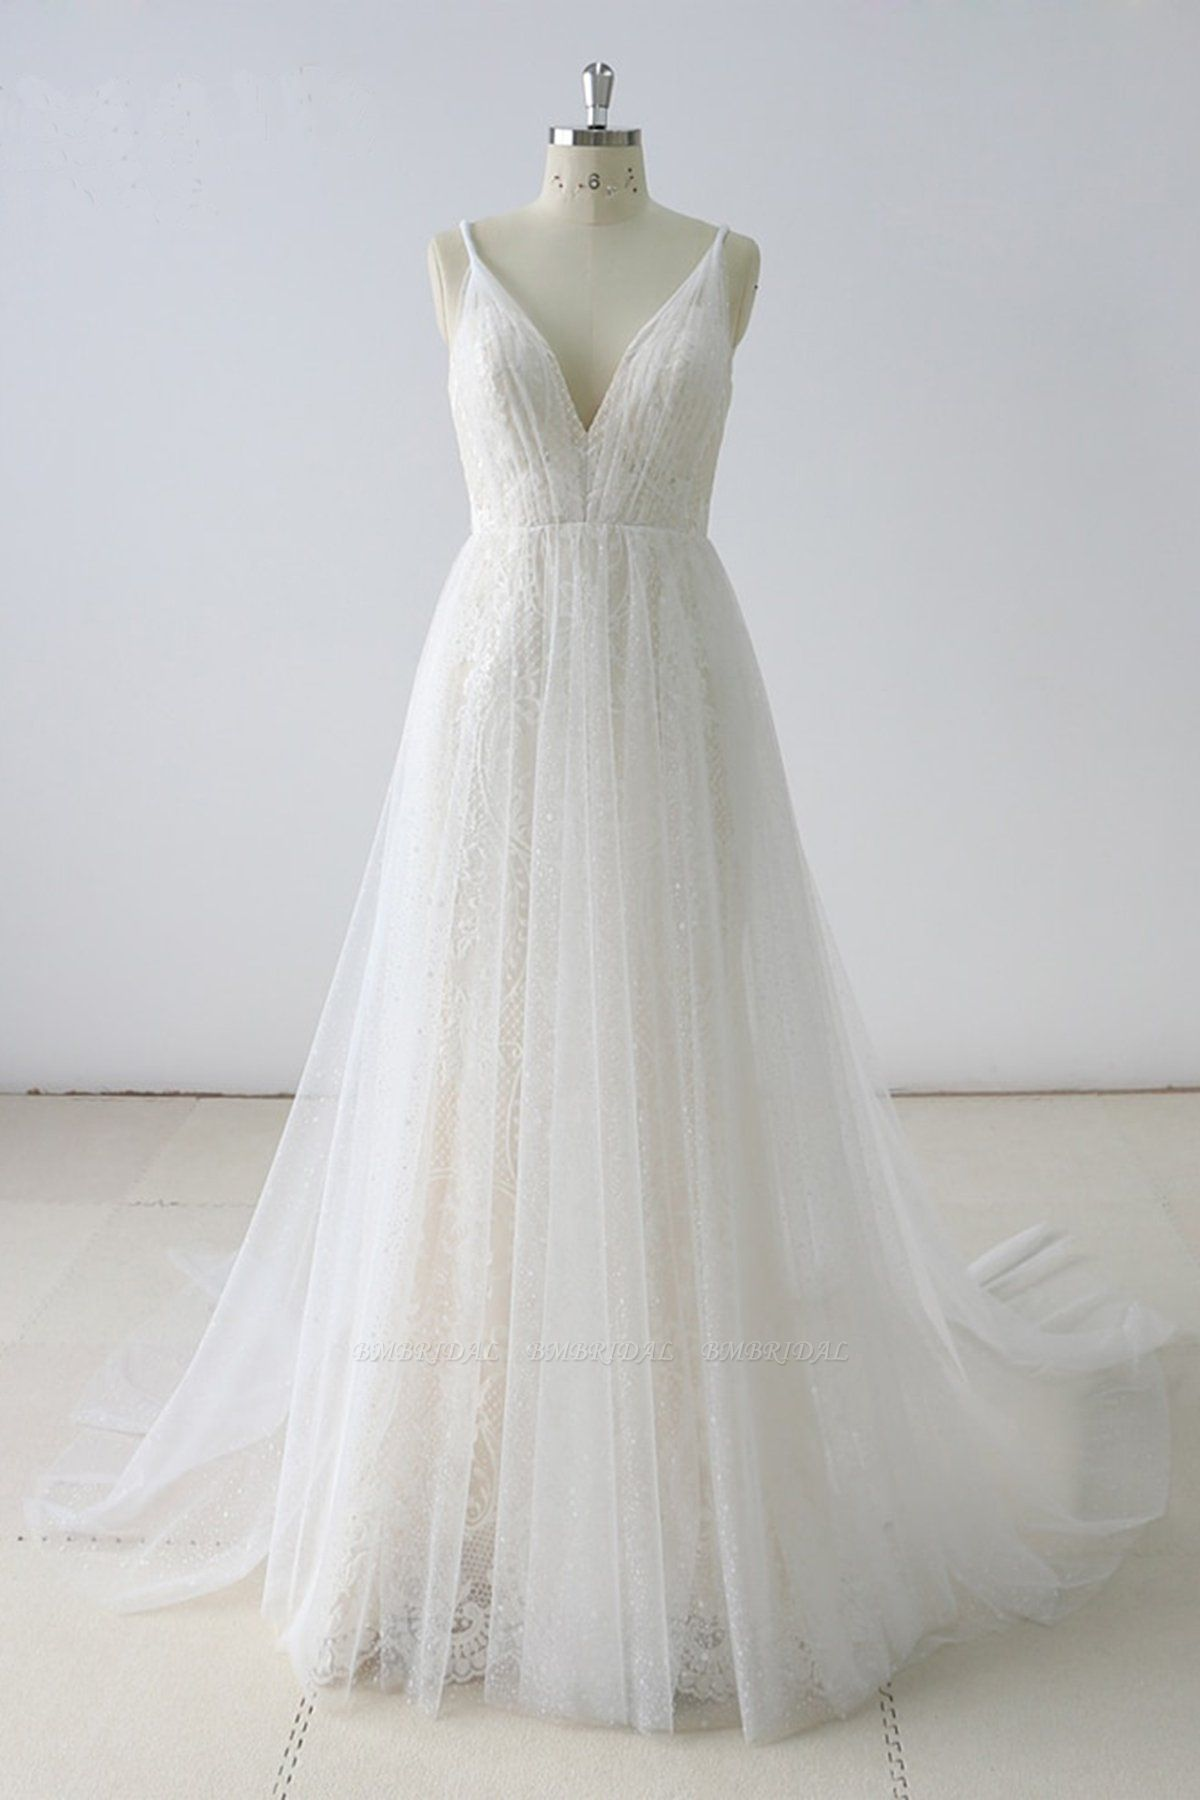 BMbridal Gorgeous Simple White Lace V-Neck Long Wedding Dress Sleeveless Appliques Bridal Gowns On Sale